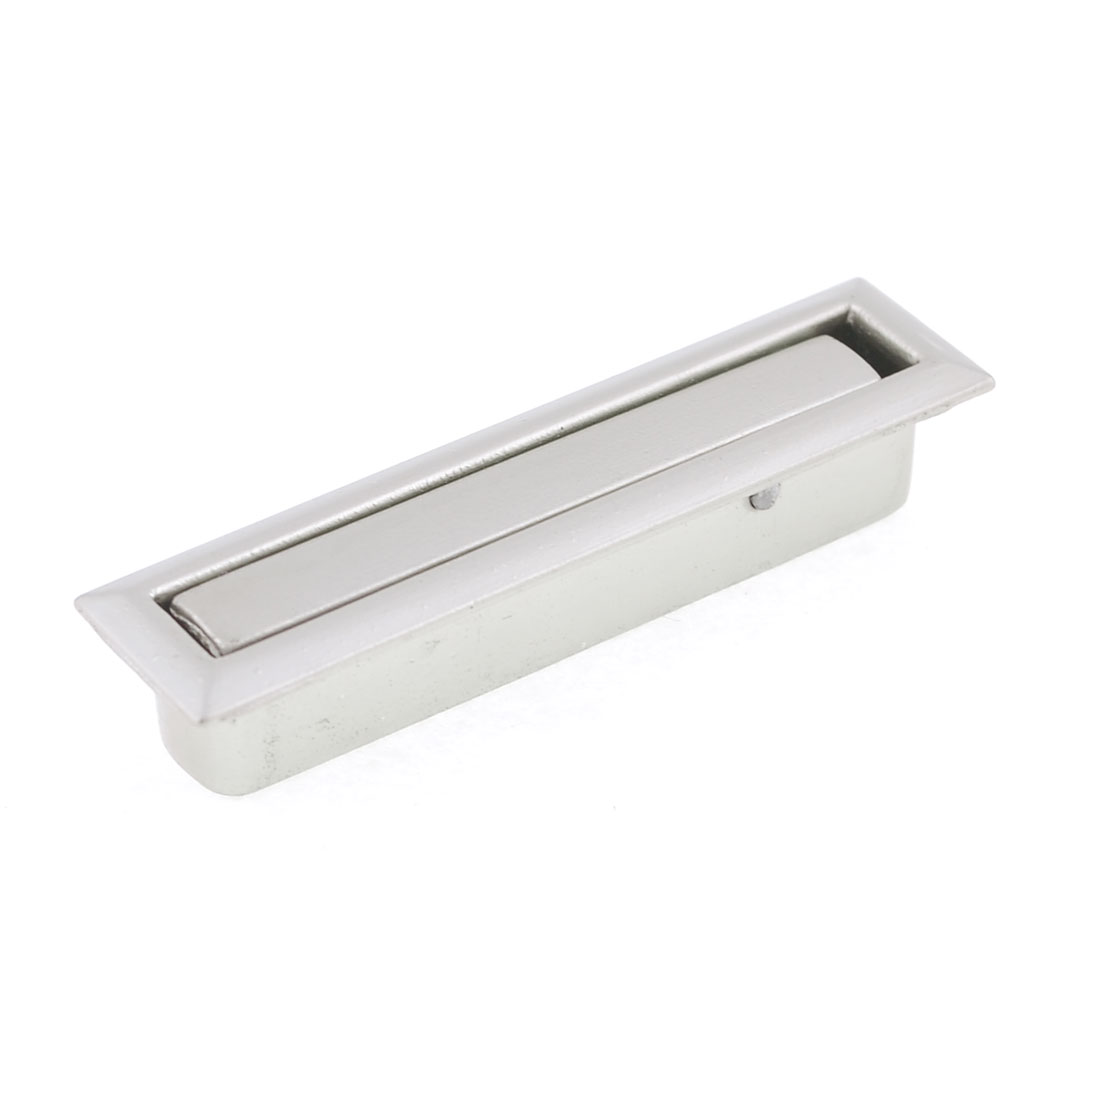 5cm Length Panel Metal Component Cabinet Door Pull Handle Silver Tone